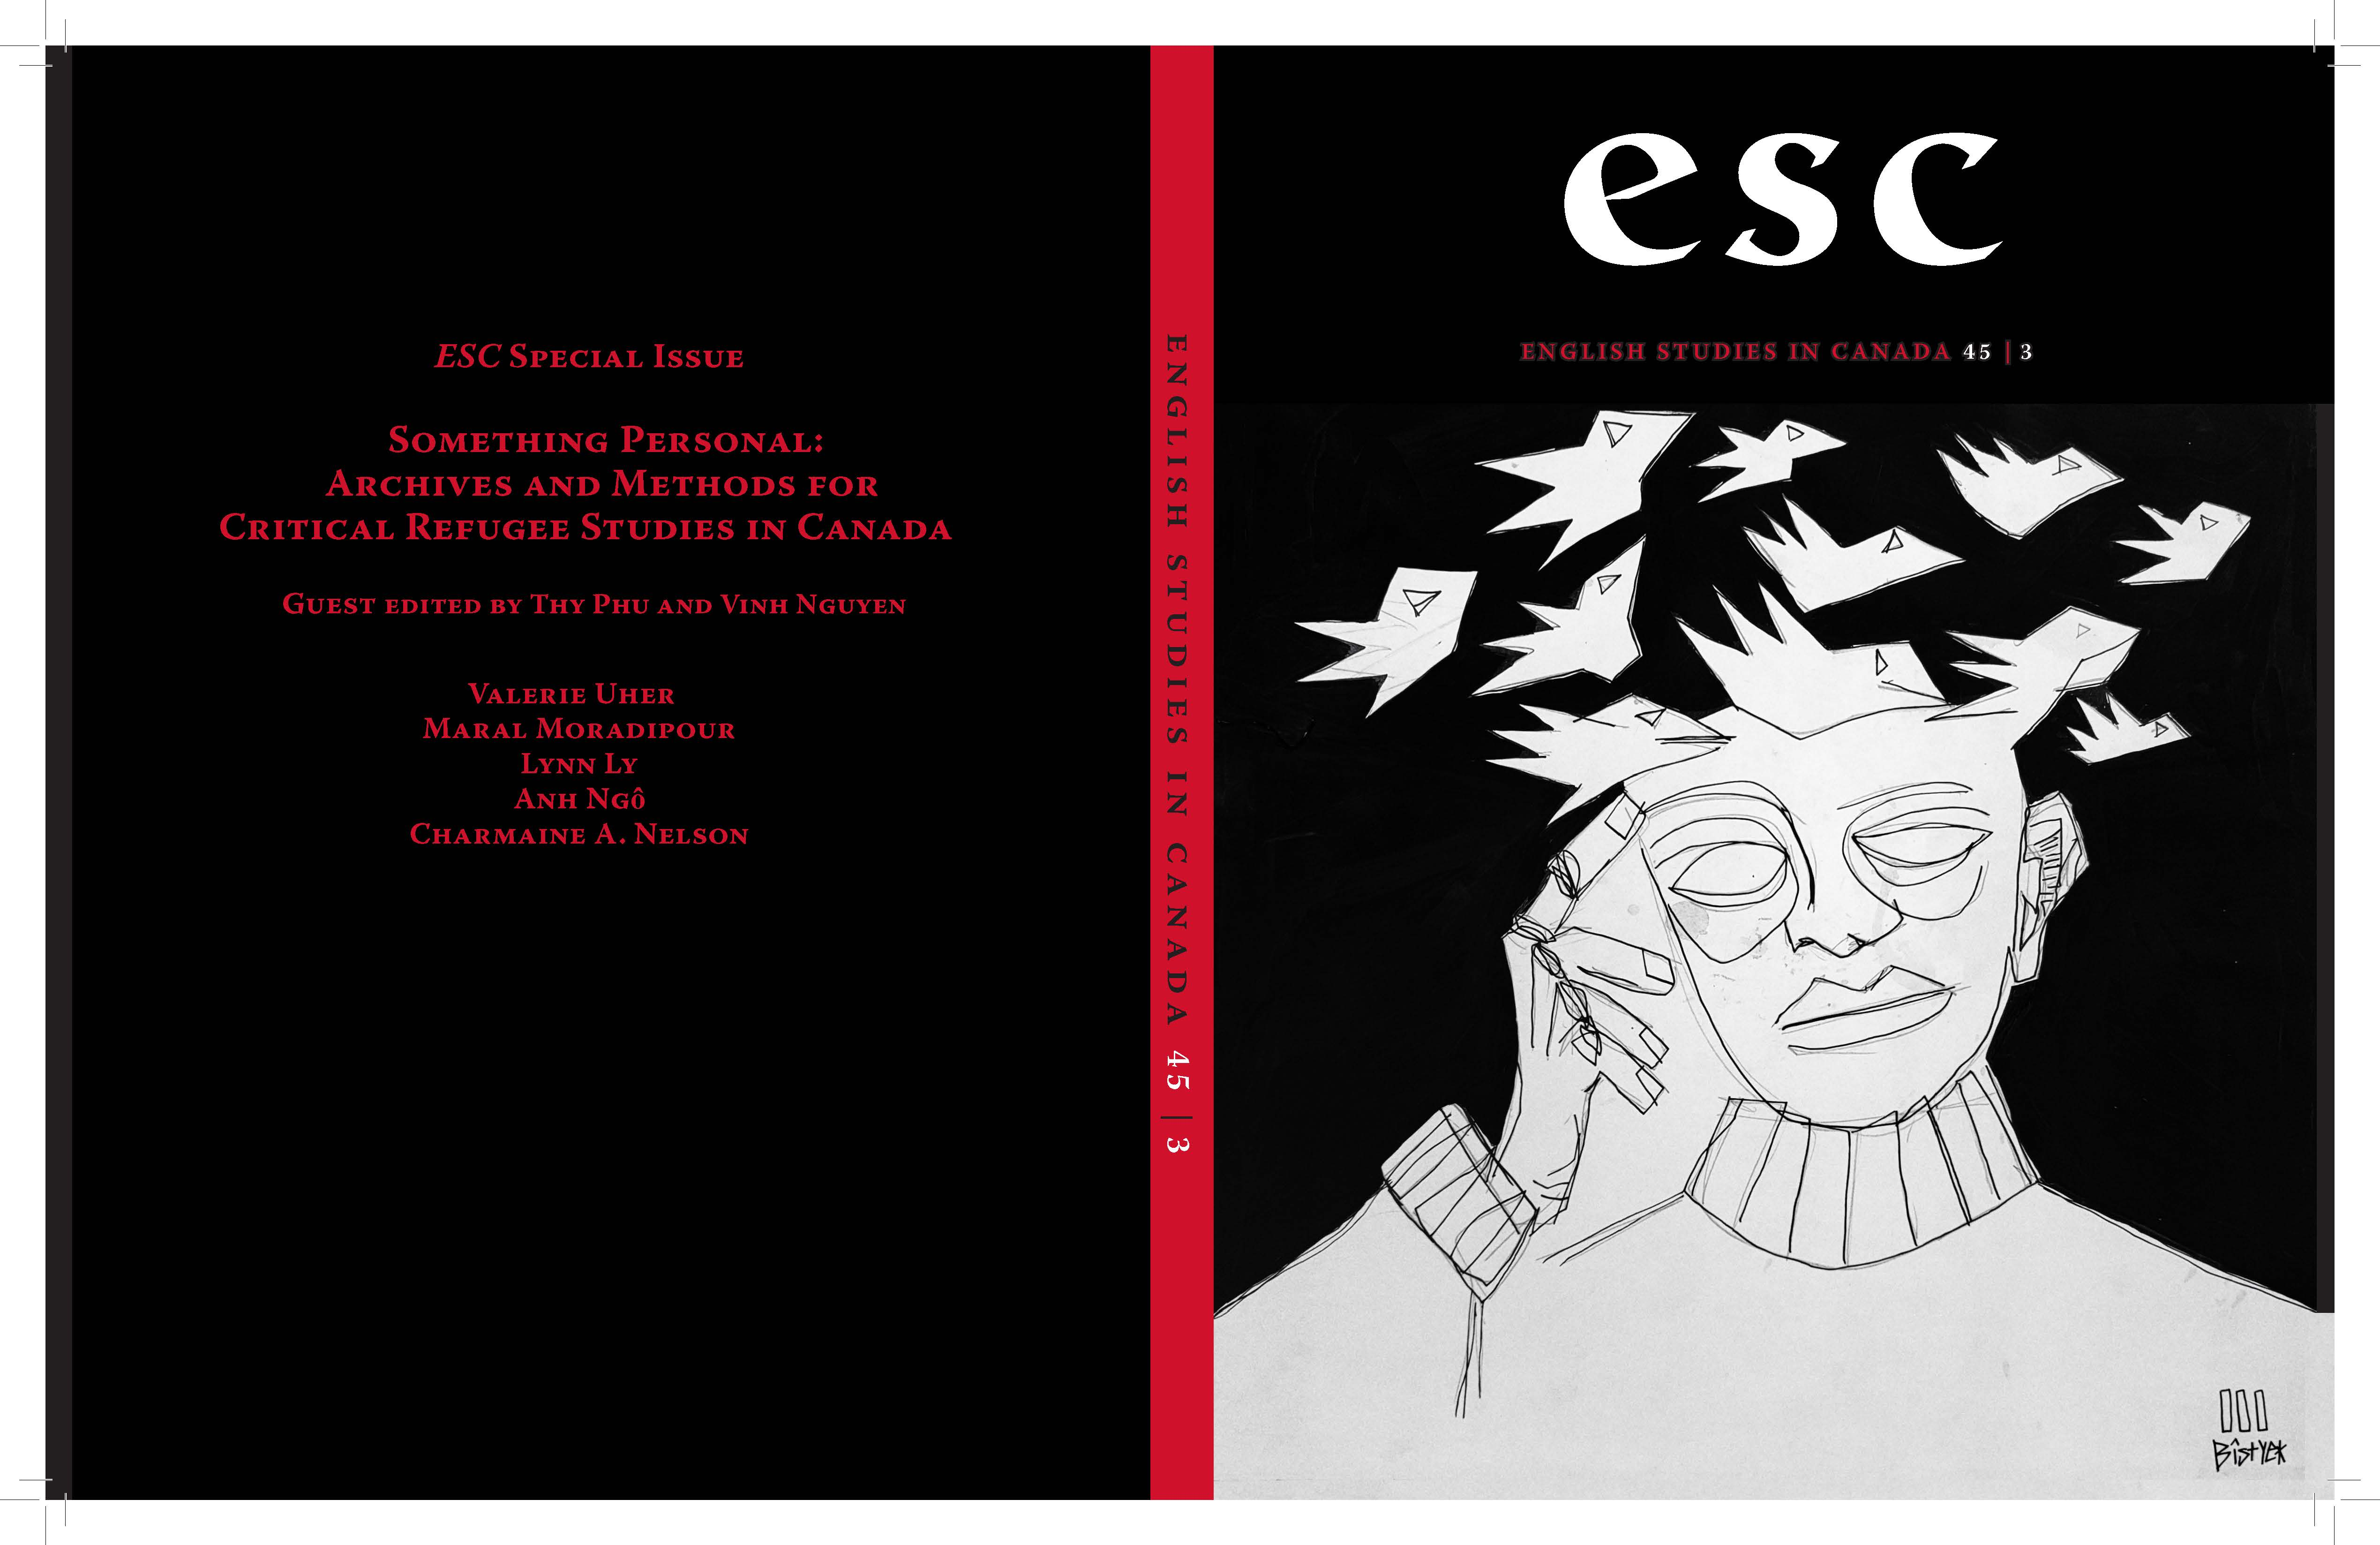 View Vol. 45 No. 3 (2019): ESC 45.3 (Sept. 2019), Special Issue--Something Personal: Archives and Methods for Critical Refugee Studies in Canada